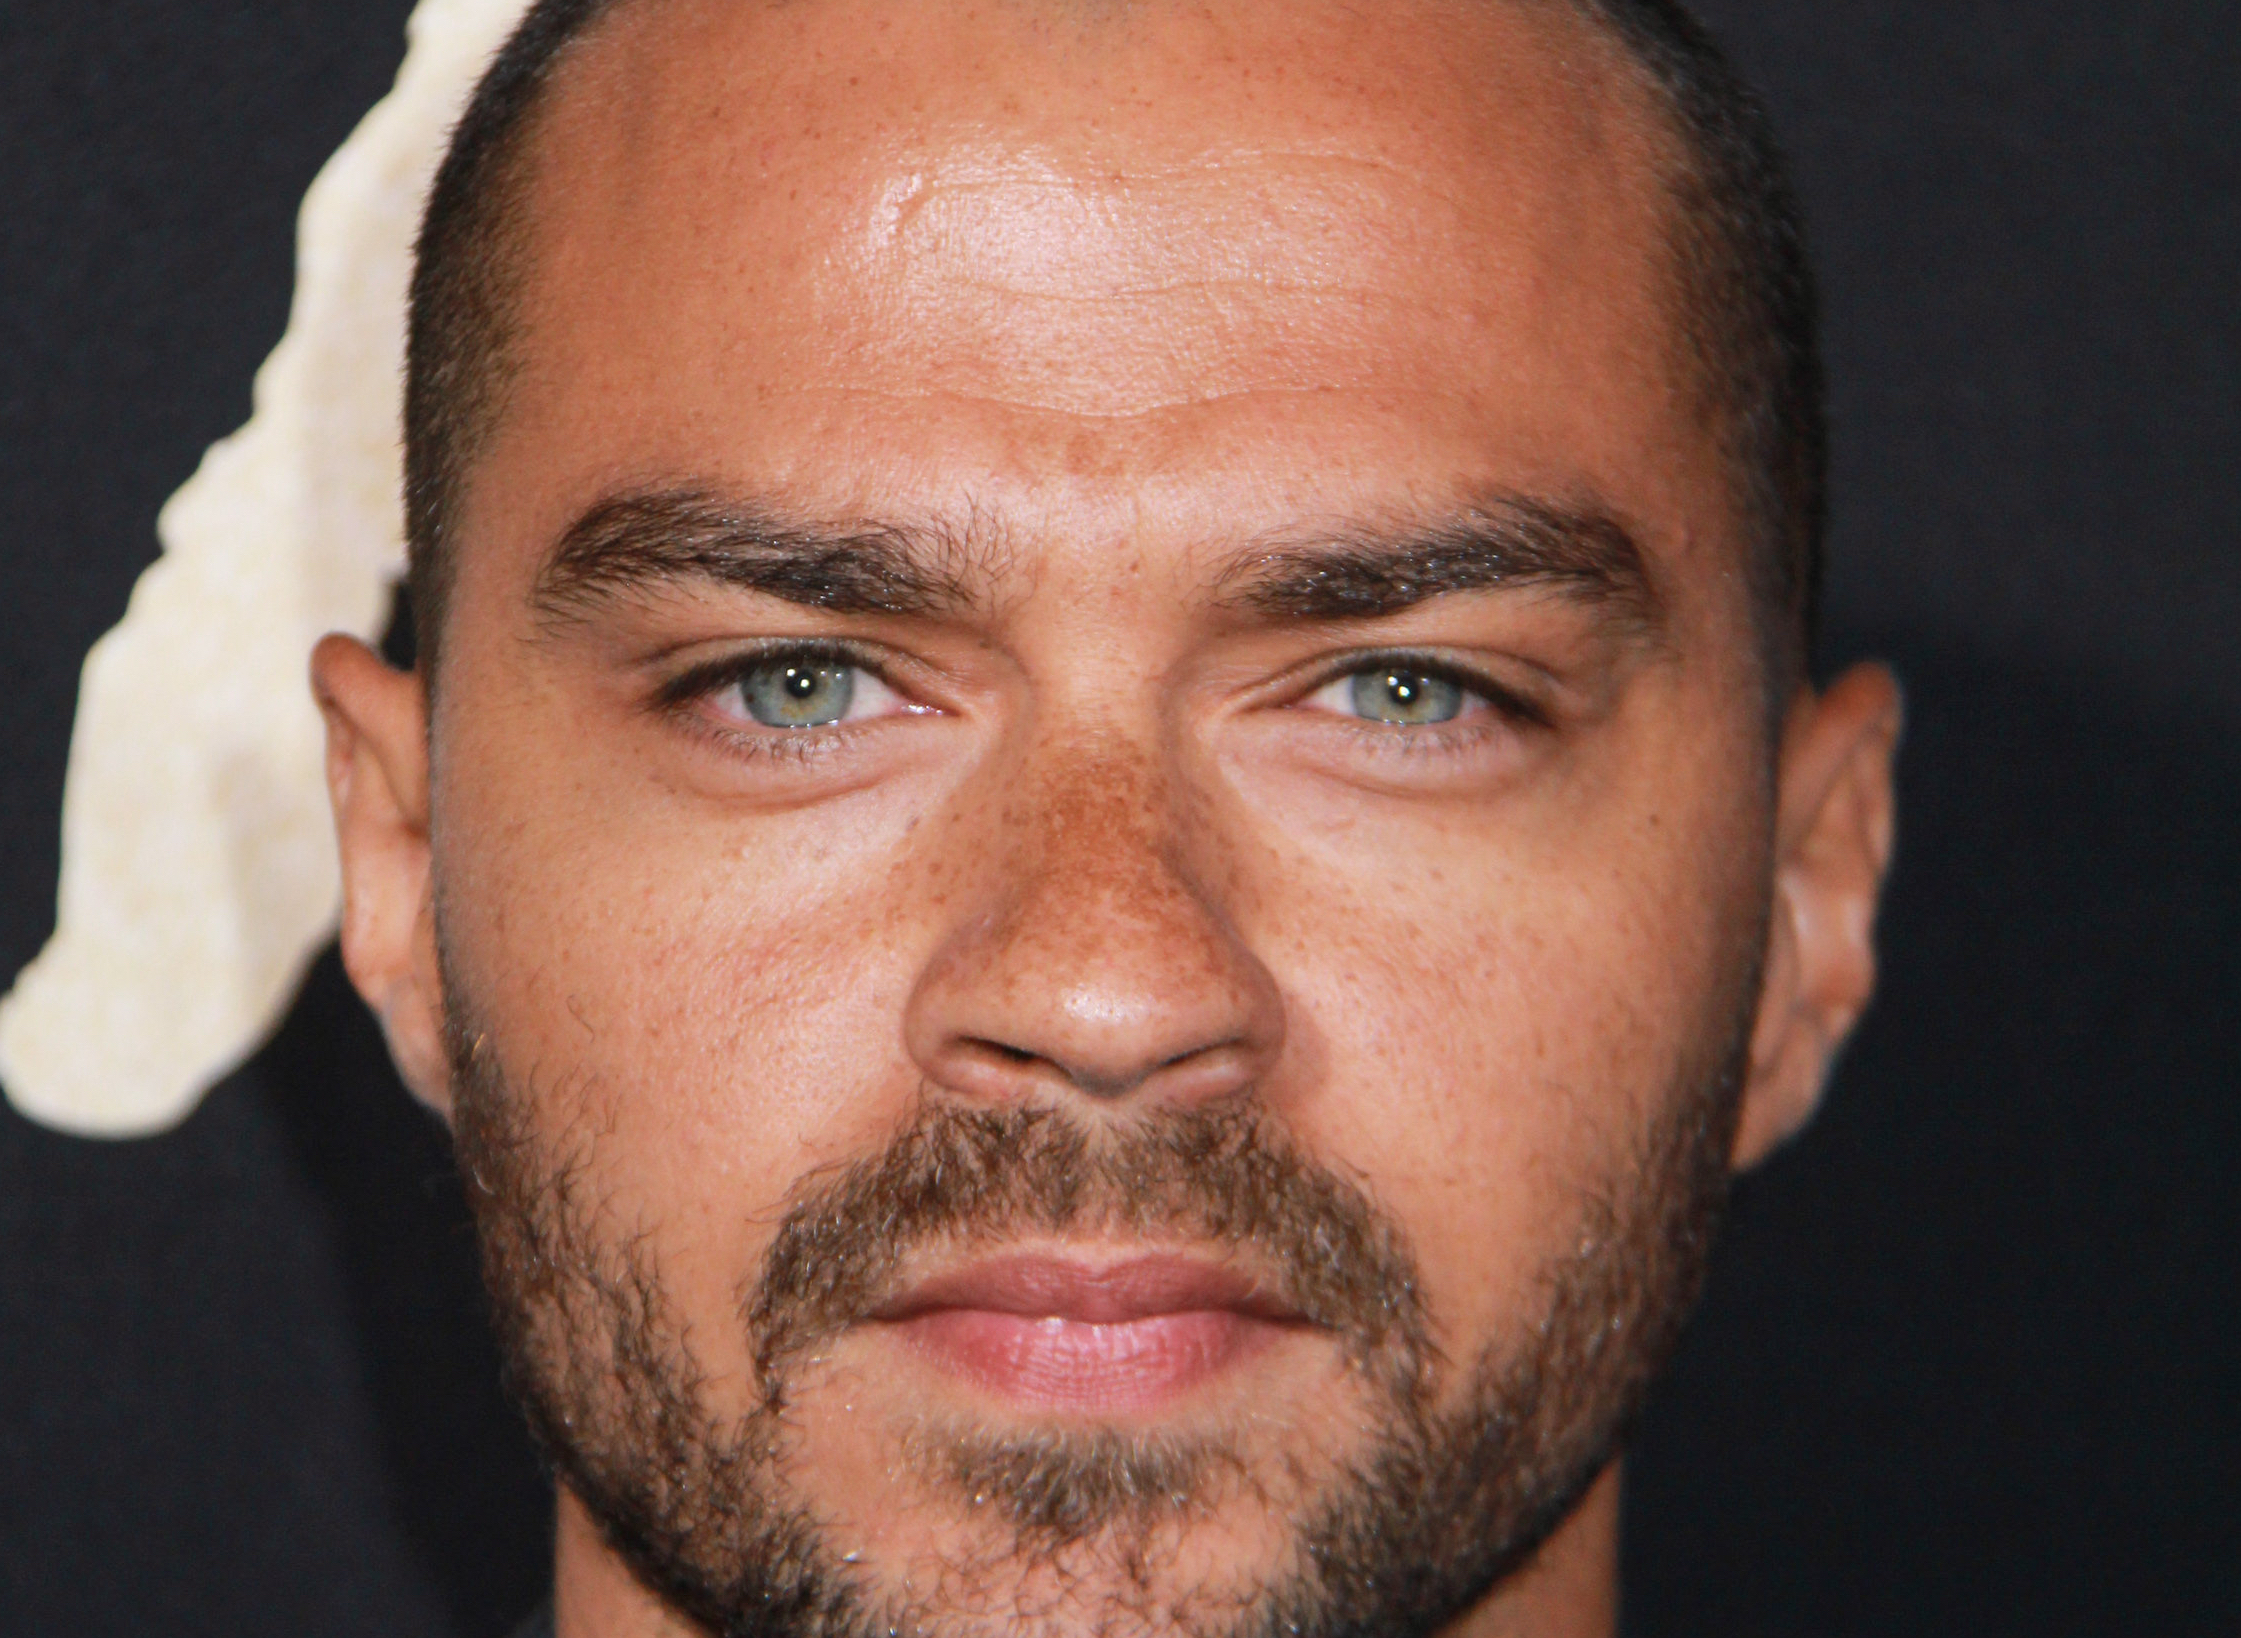 "09/21/2016 - Jesse Williams - ""The Birth of a Nation"" Los Angeles Premiere - Inside Arrivals - ArcLight Cinemas Cinerama Dome, 6360 Sunset Boulevard - Los Angeles, CA, USA - Keywords: Vertical, Fox Searchlight Pictures, Biography, Drama, Film Premiere, Movie Premiere, Person, People, Celebrity, Celebrities, Portrait, Photography, Red Carpet Event, Arts Culture and Entertainment, Attending, Hollywood, California Orientation: Portrait Face Count: 1 - False - Photo Credit: Izumi Hasegawa / PRPhotos.com - Contact (1-866-551-7827) - Portrait Face Count: 1"